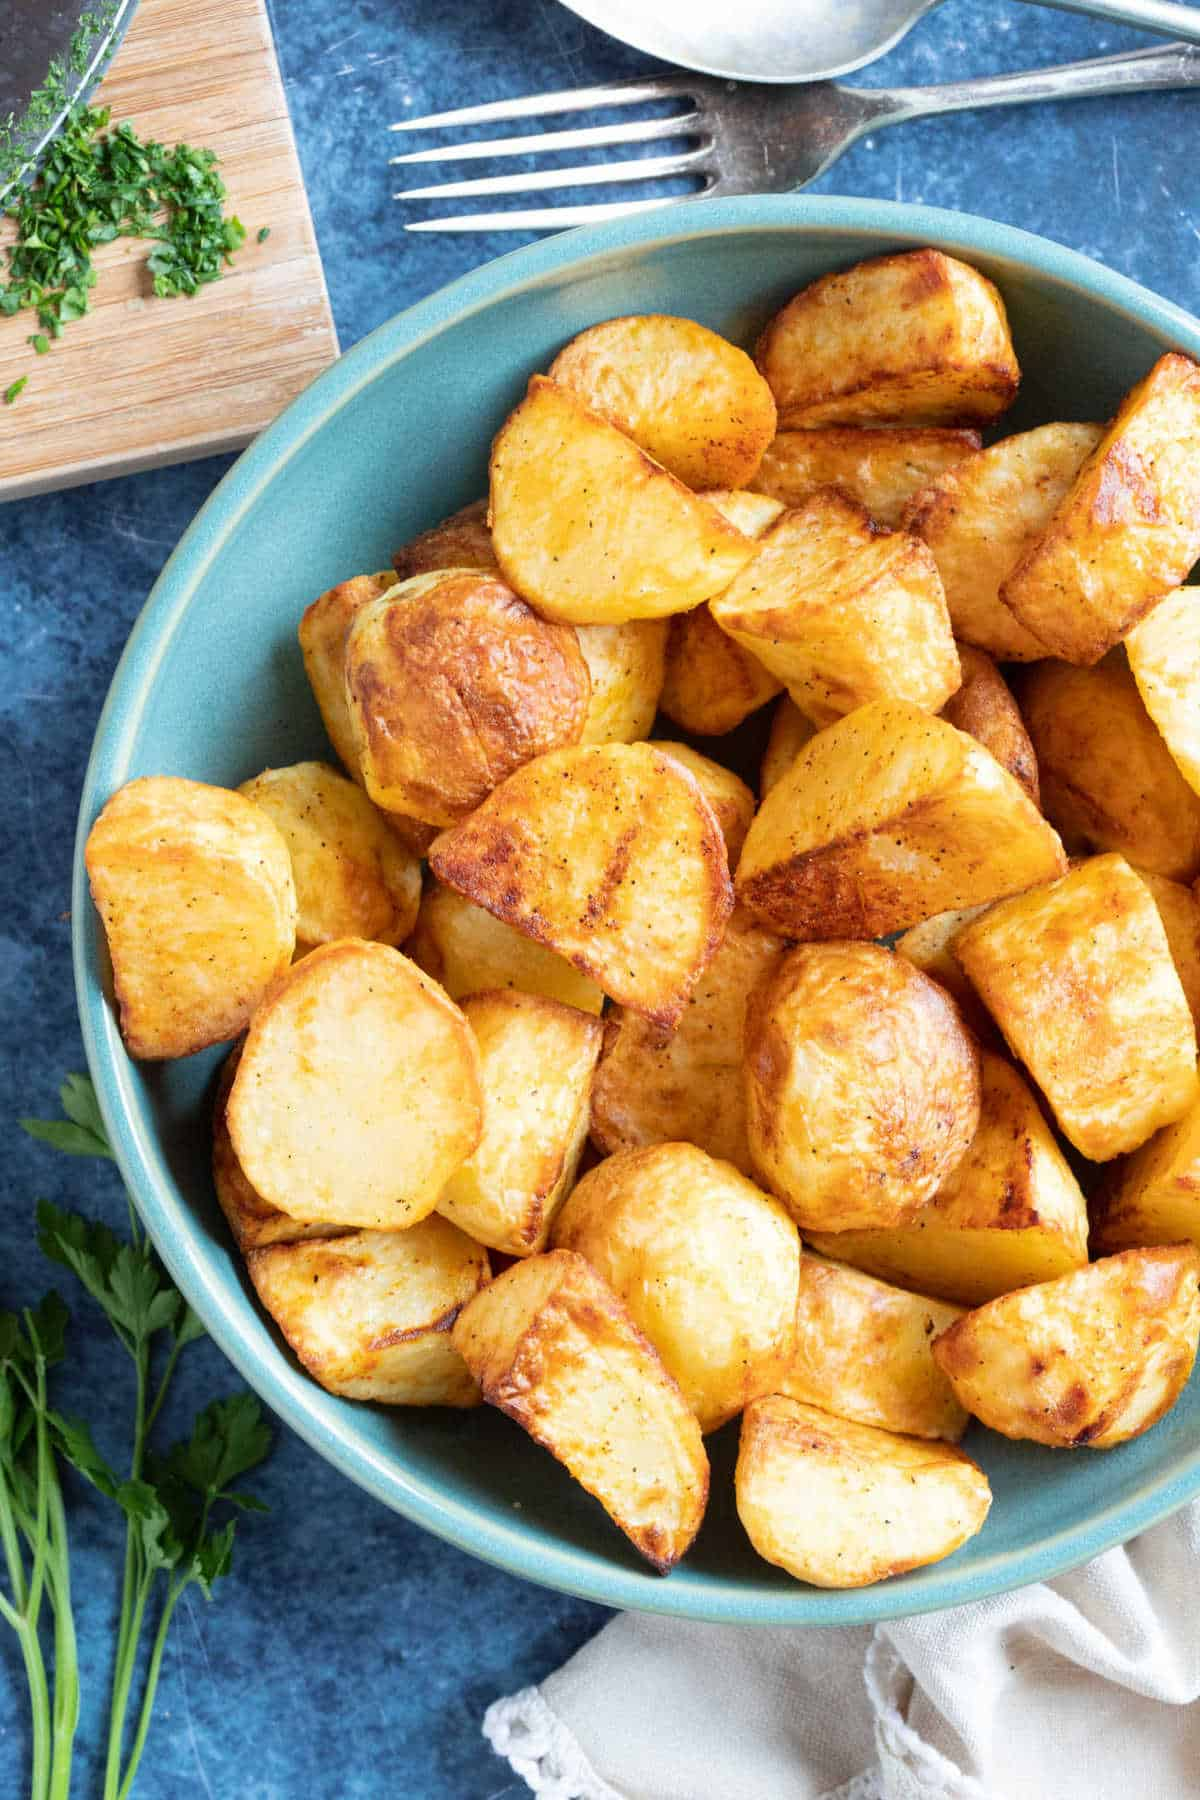 Roast potatoes in a serving dish.